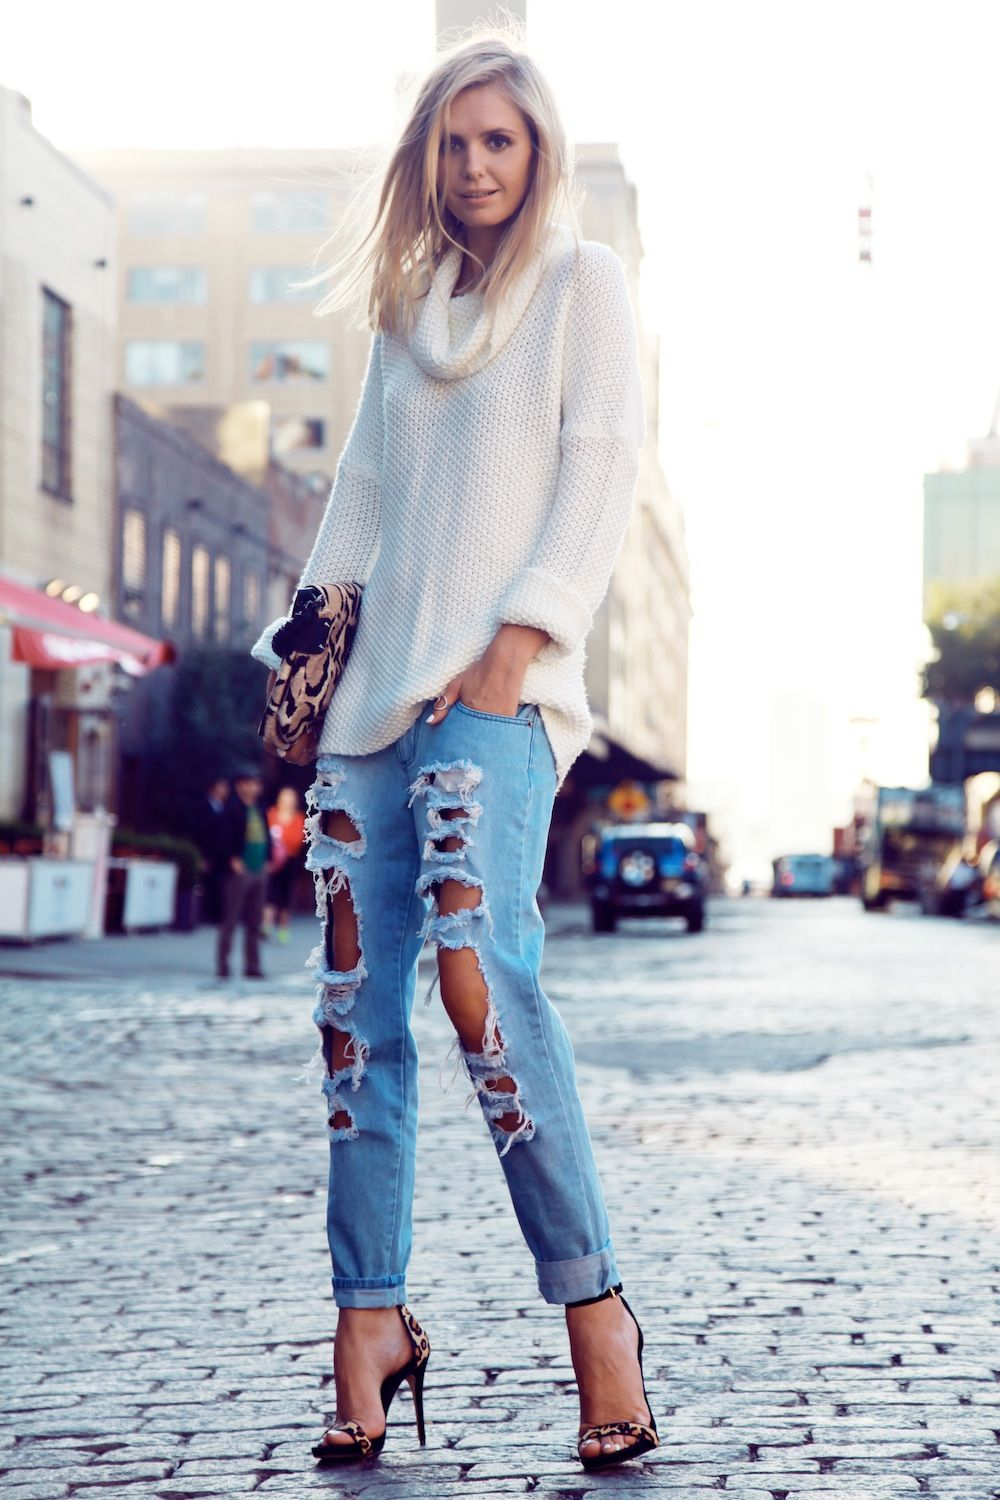 Bf jeans and a cosy sweater with matching bag and clutch perfect fashion favorites jeans - Zerrissene jeans selber machen ...